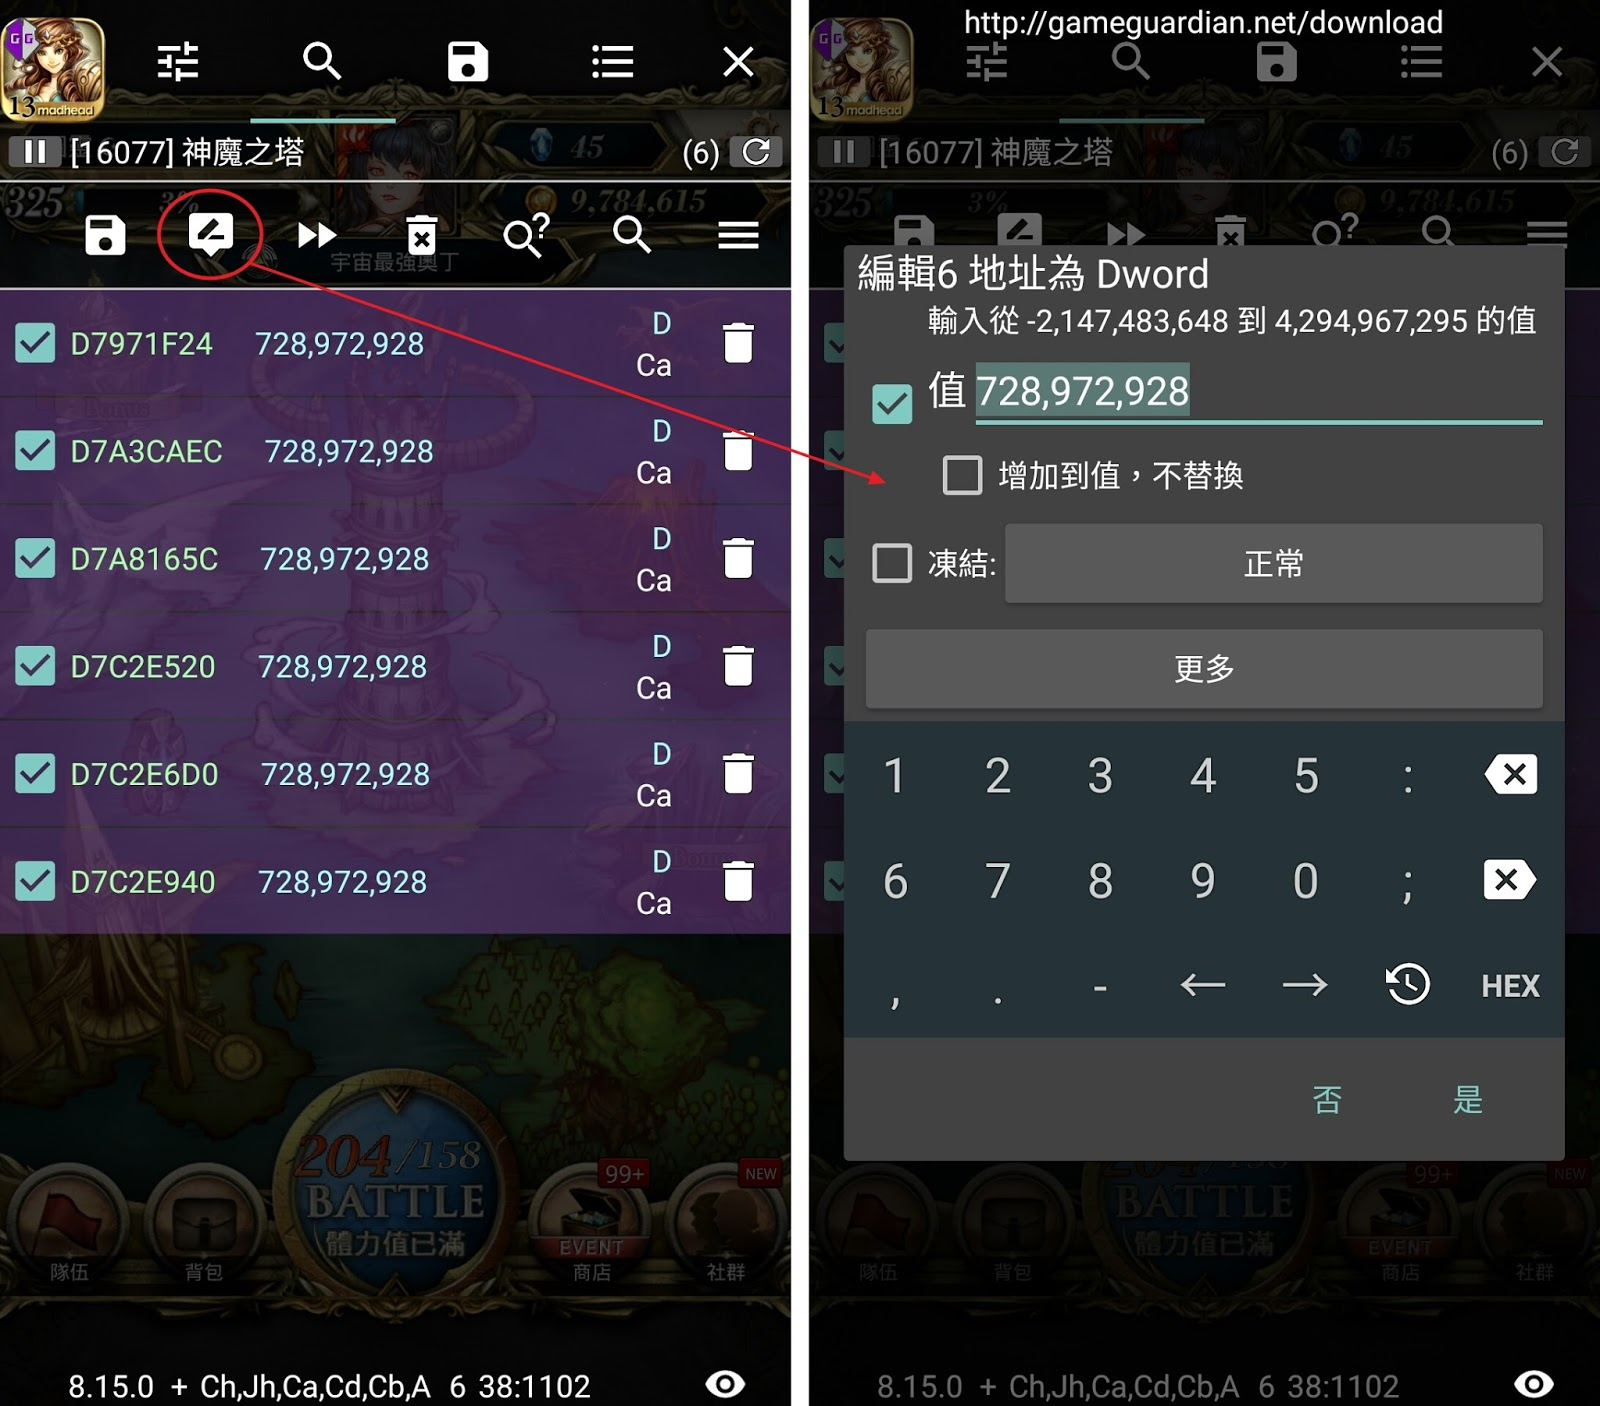 Screenshot 20170505 181347 - 《GameGuardian》最新手遊作弊修改器,還可當加速器、支援安卓6.0以上